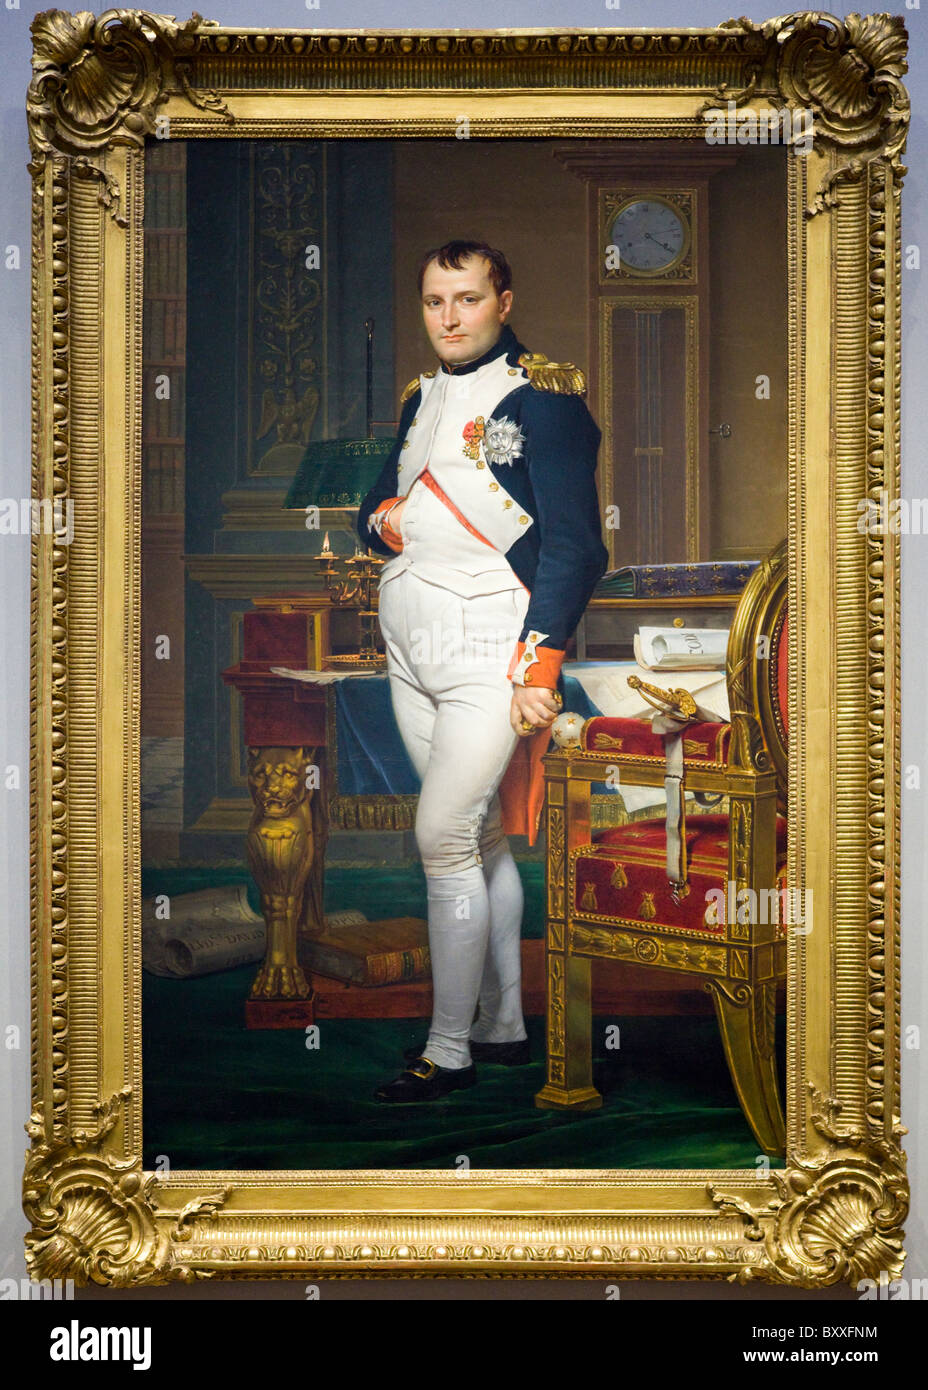 'The Emperor Napoleon in His Study at the Tuileries' by Jacques-Louis David, 1812 - Stock Image